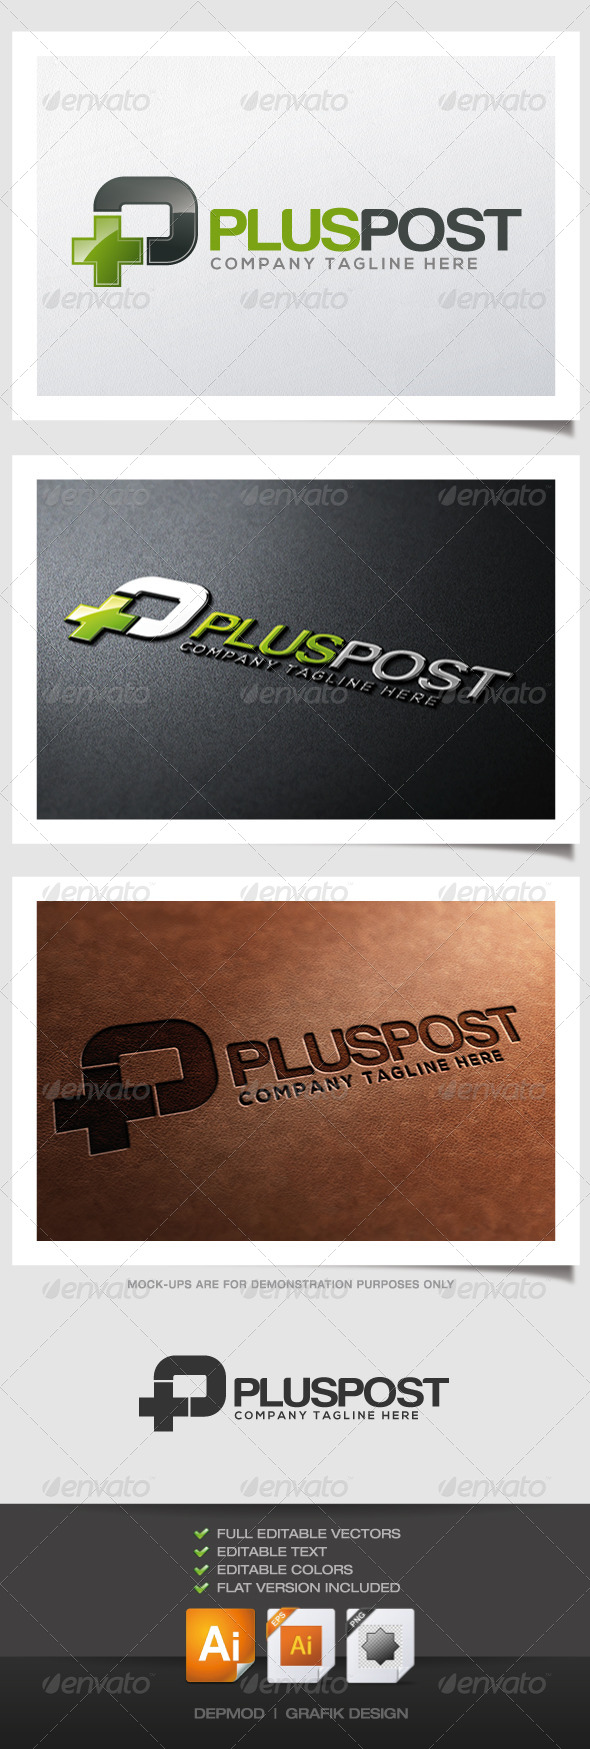 Plus Post Logo